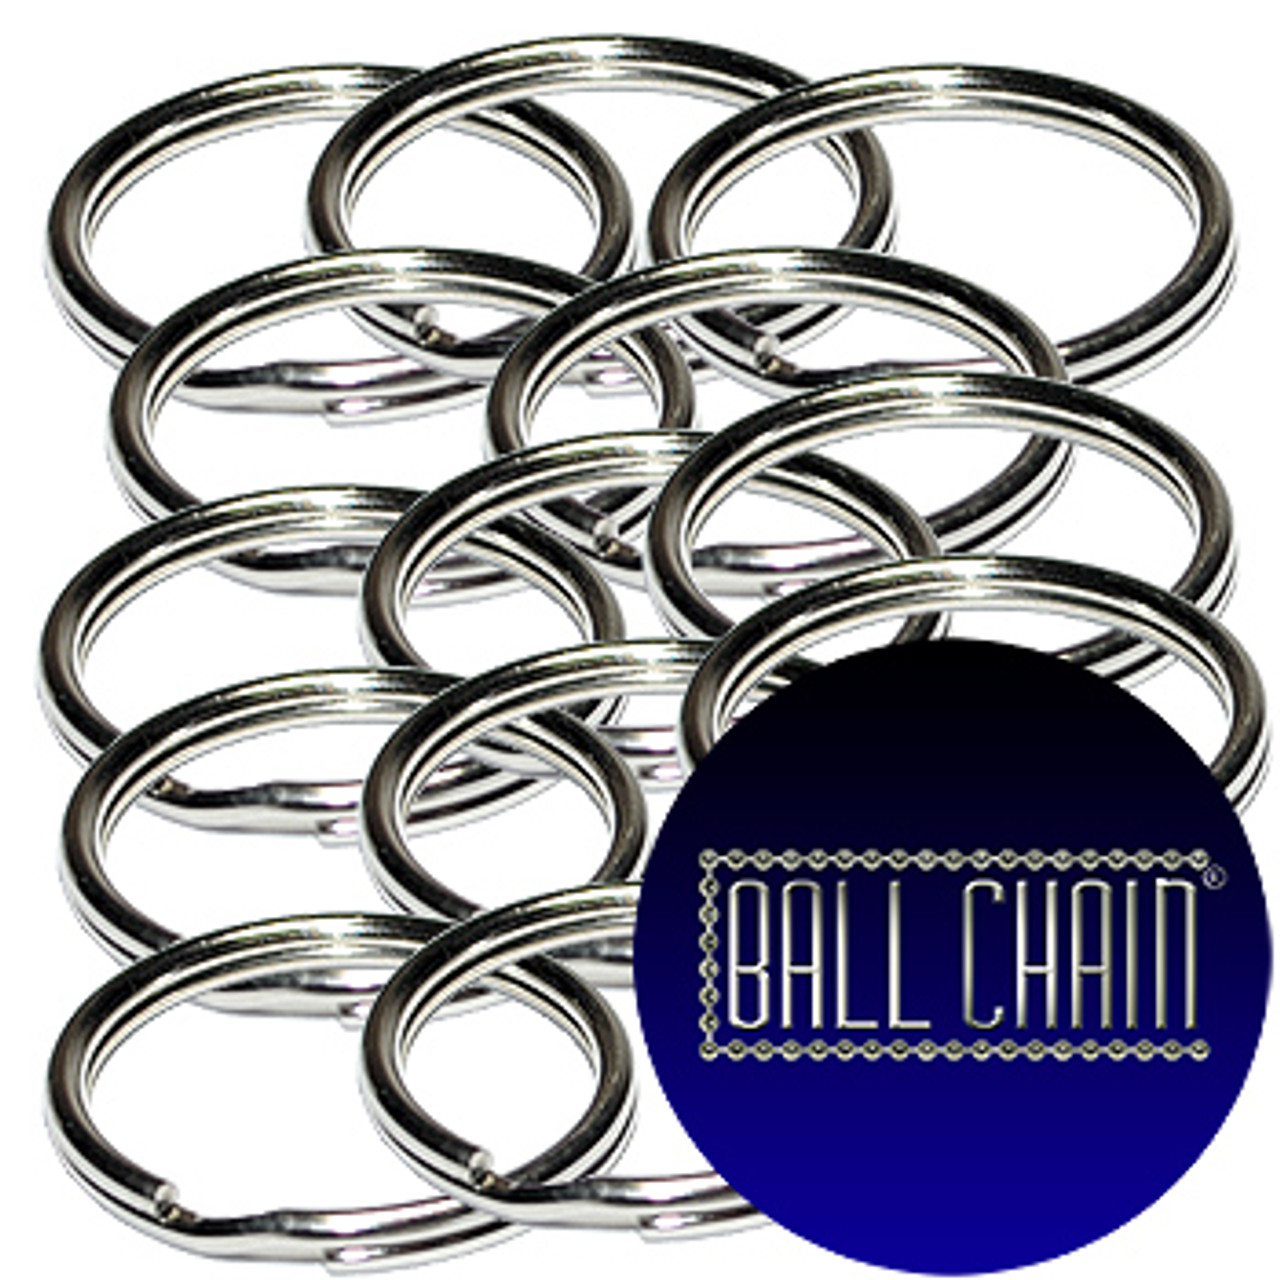 39mm or ~ 1.5 inch Nickel Plated Steel Split Key Rings are sold in bulk at low wholesale prices.